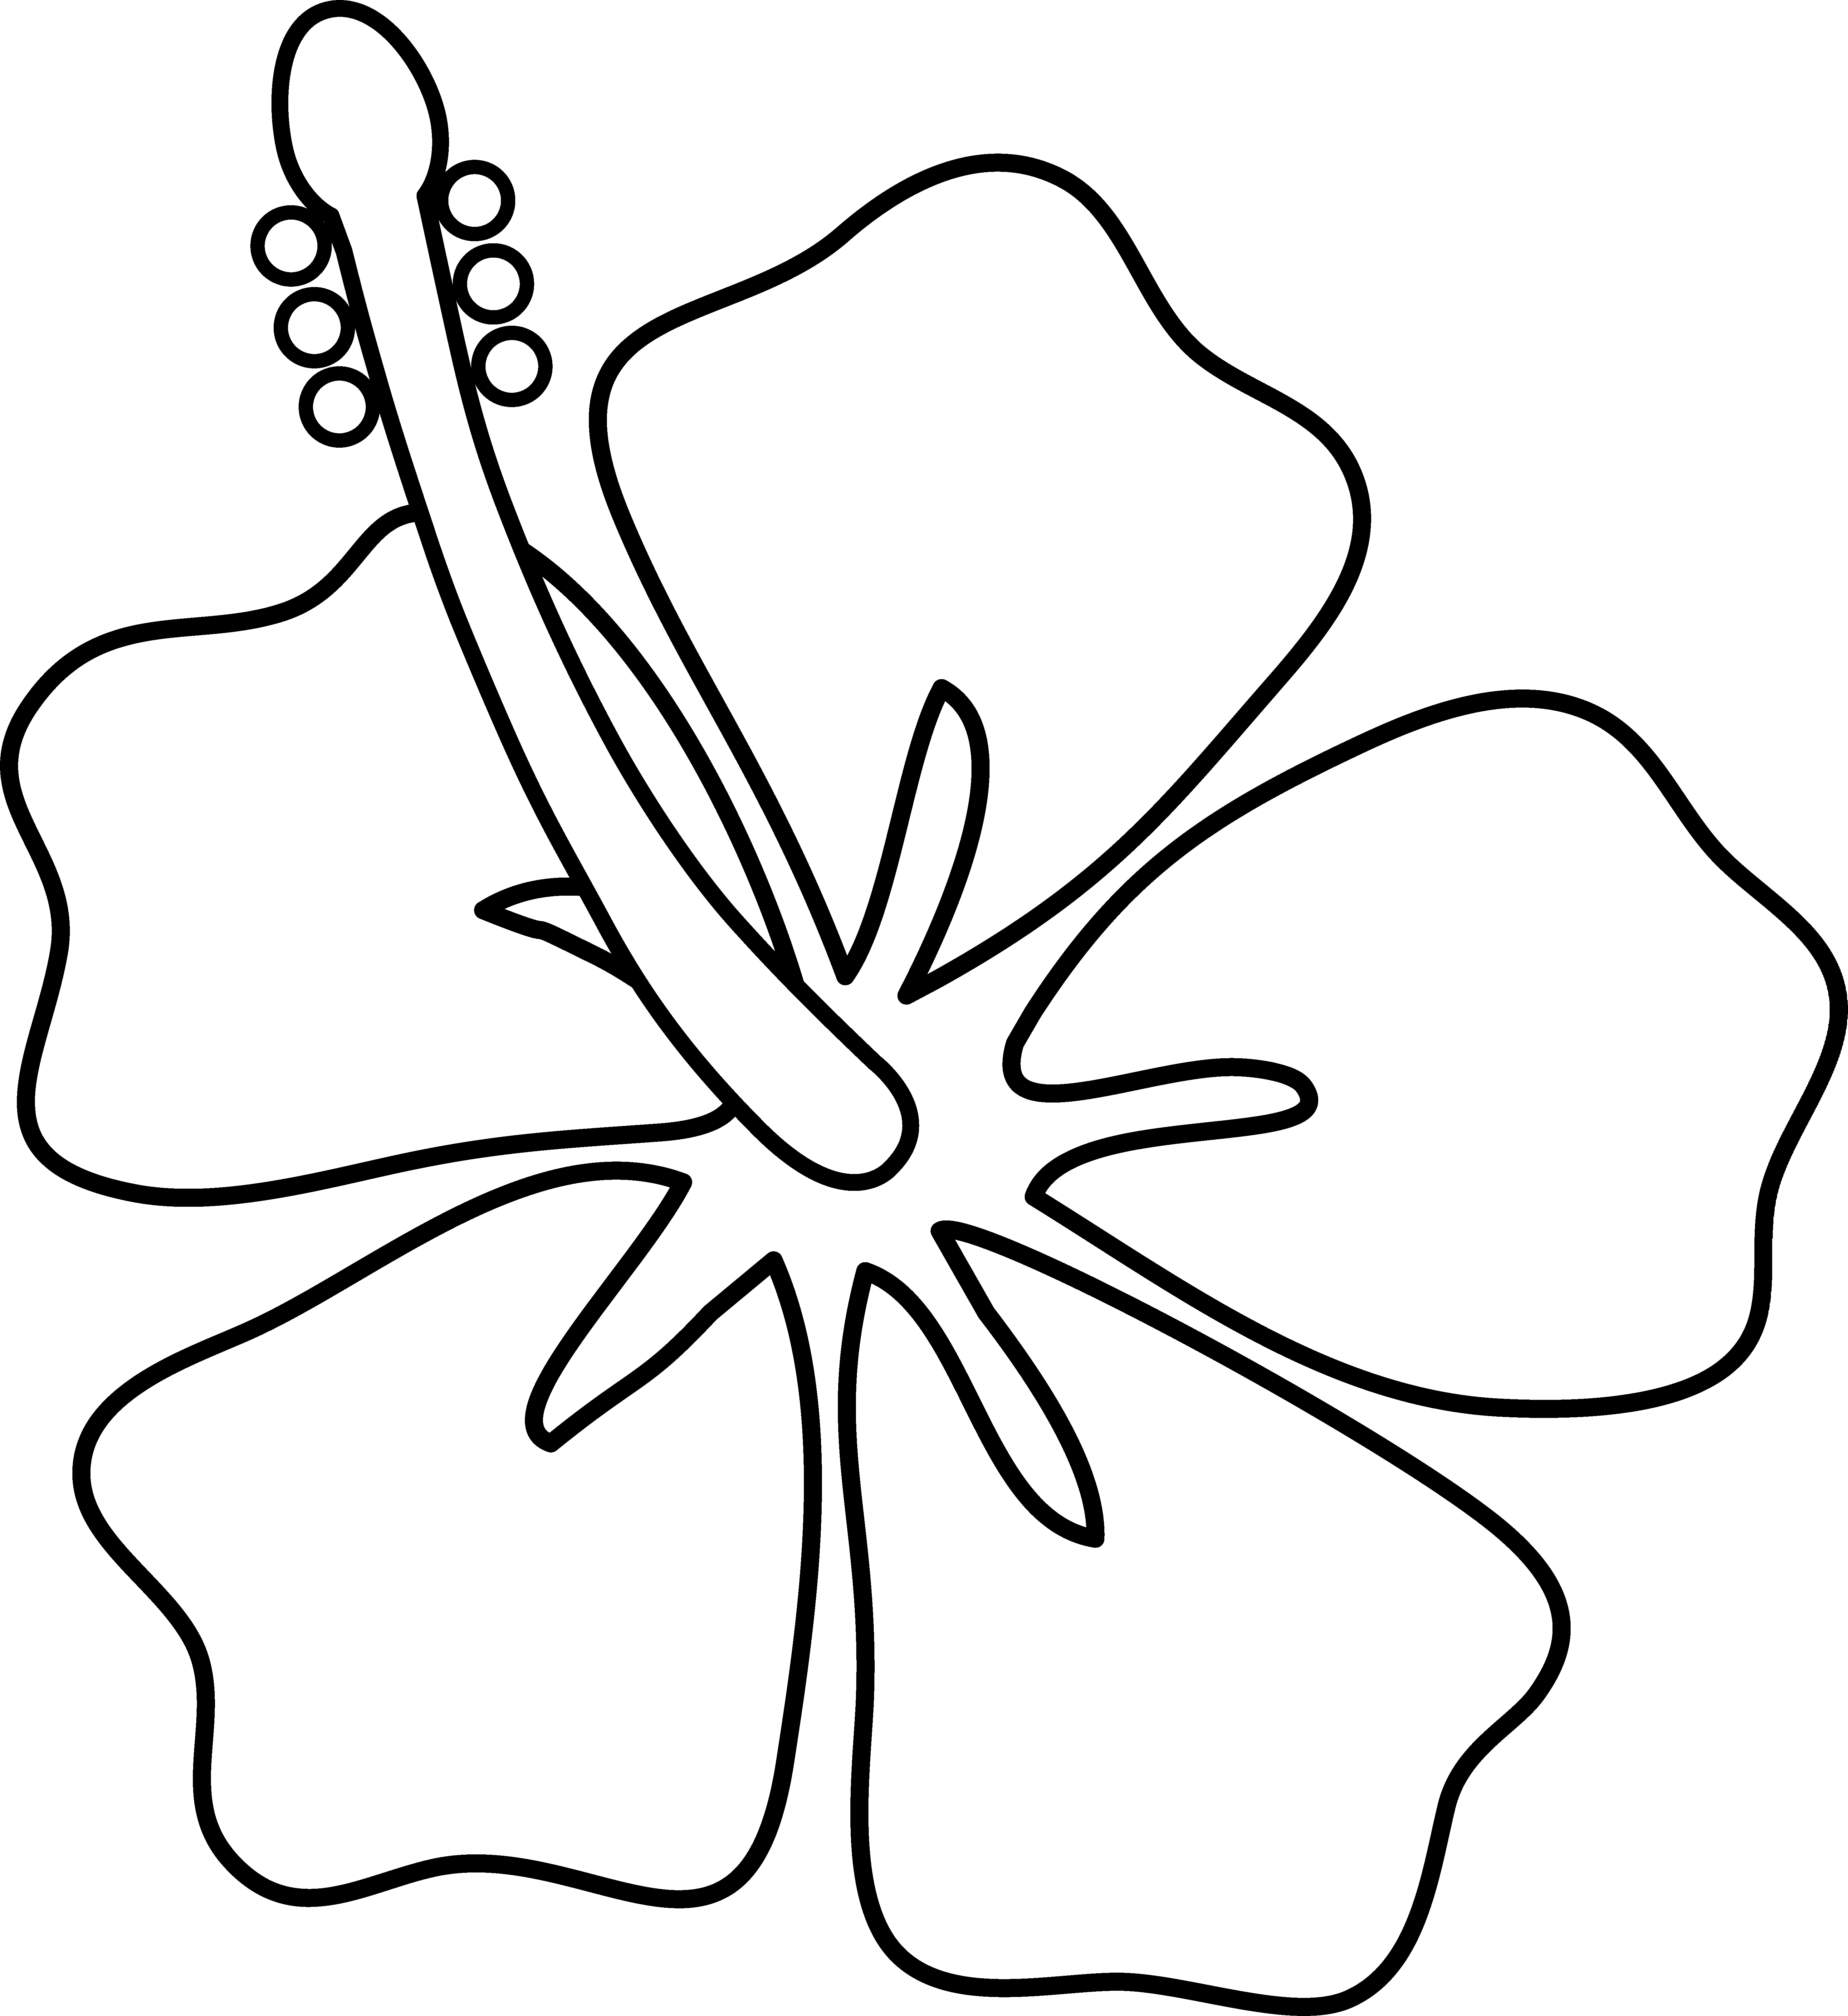 Cartoon Drawing Of Flowers At Getdrawings Free For Personal